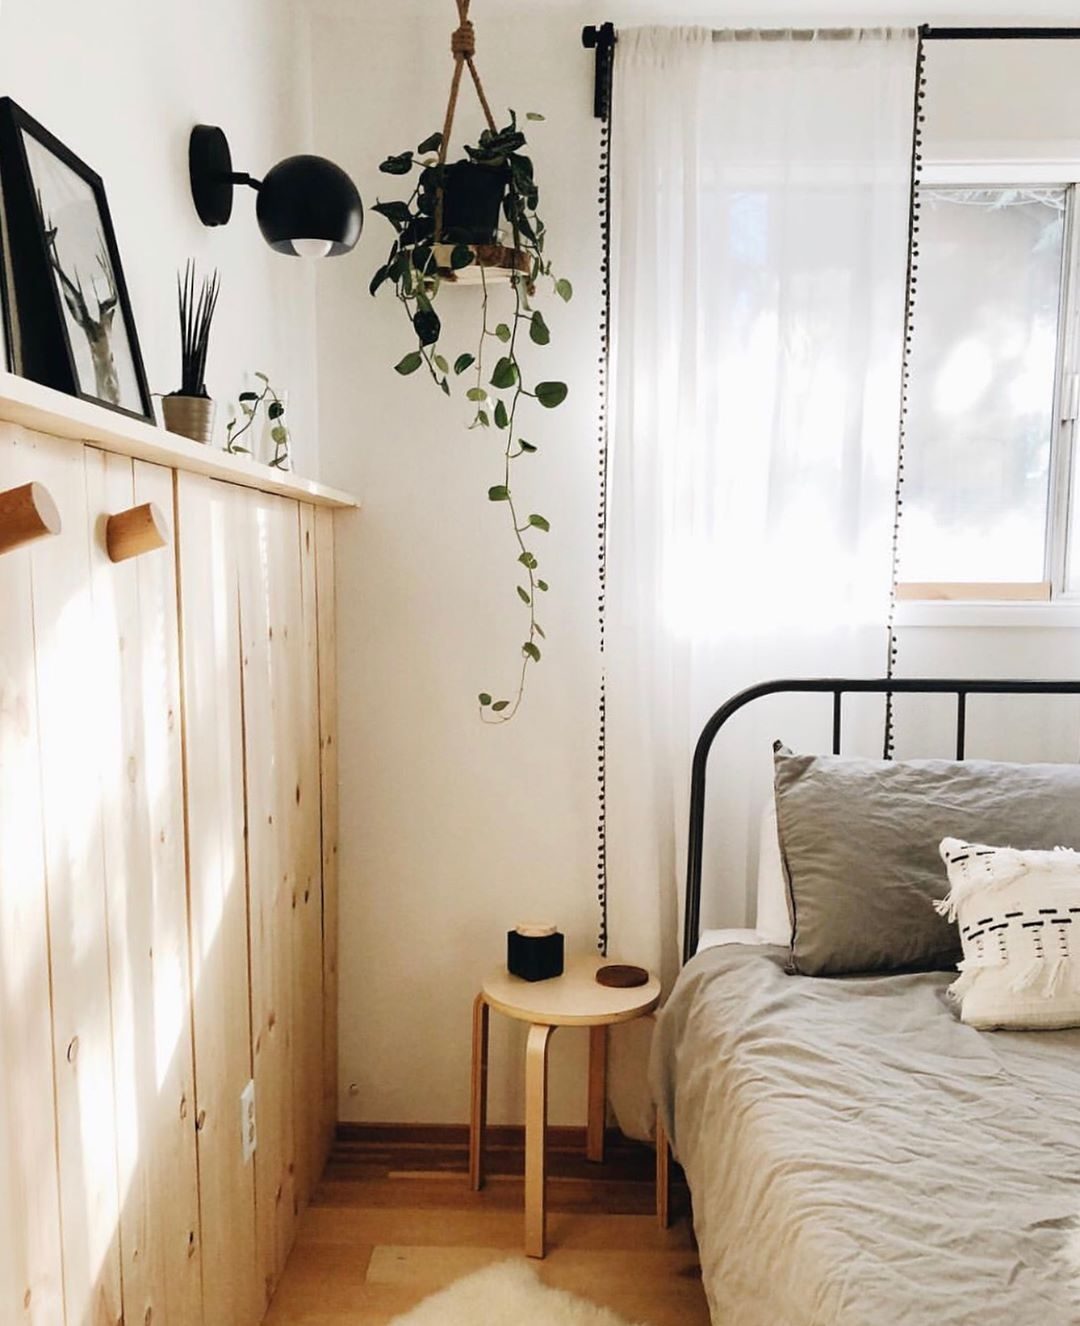 Lovely Minimalist Bohemian Dorm Room Bedding On Lovely Industrial Meets Boho In This Minimal Bedroom On Minimalist Bohemian Dorm Room Bedding